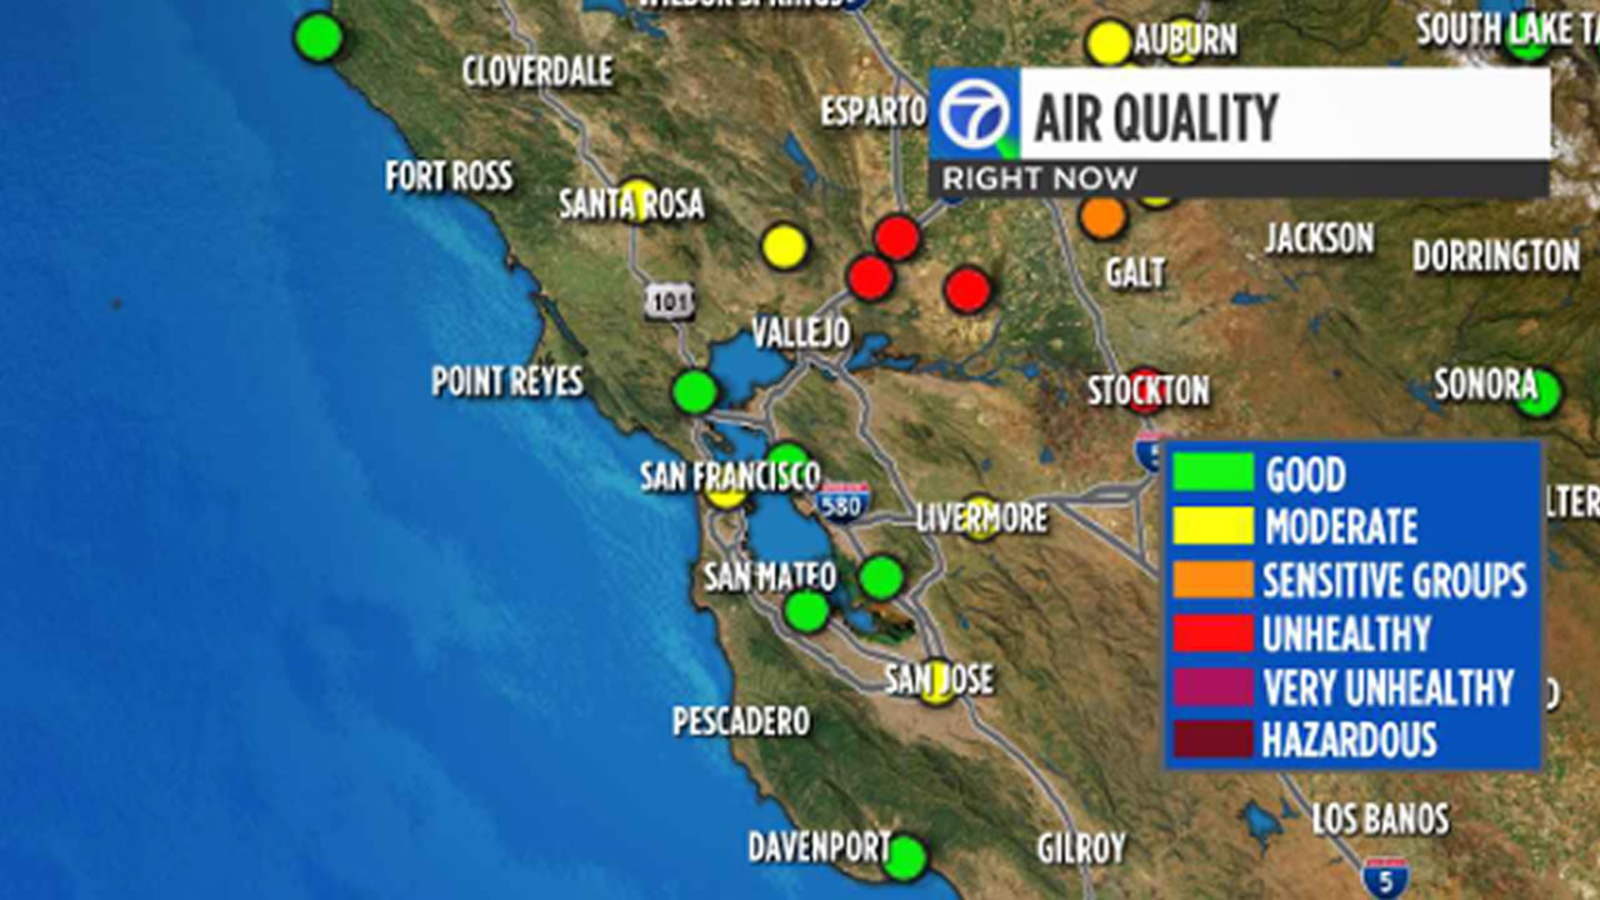 Storm clears unhealthy air from Bay Area skies on alameda county, san francisco bay, marin county, pittsburg california map, oakland california map, santa rosa, san jose, northern california, mountain view california map, san diego earthquake fault zone map, fairfield california map, richmond california map, santa rosa mountain trail map, southern california, southern california map, santa cruz california map, orange county, san francisco, east bay, fresno california map, santa clara, east bay california map, central coast california map, santa rosa california map, peninsula california map, california california map, san jose california map, northern california map, silicon valley, santa clara county, palo alto, golden gate bridge, south bay california map, san mateo county, sonoma county, los angeles california map, santa clara california map,